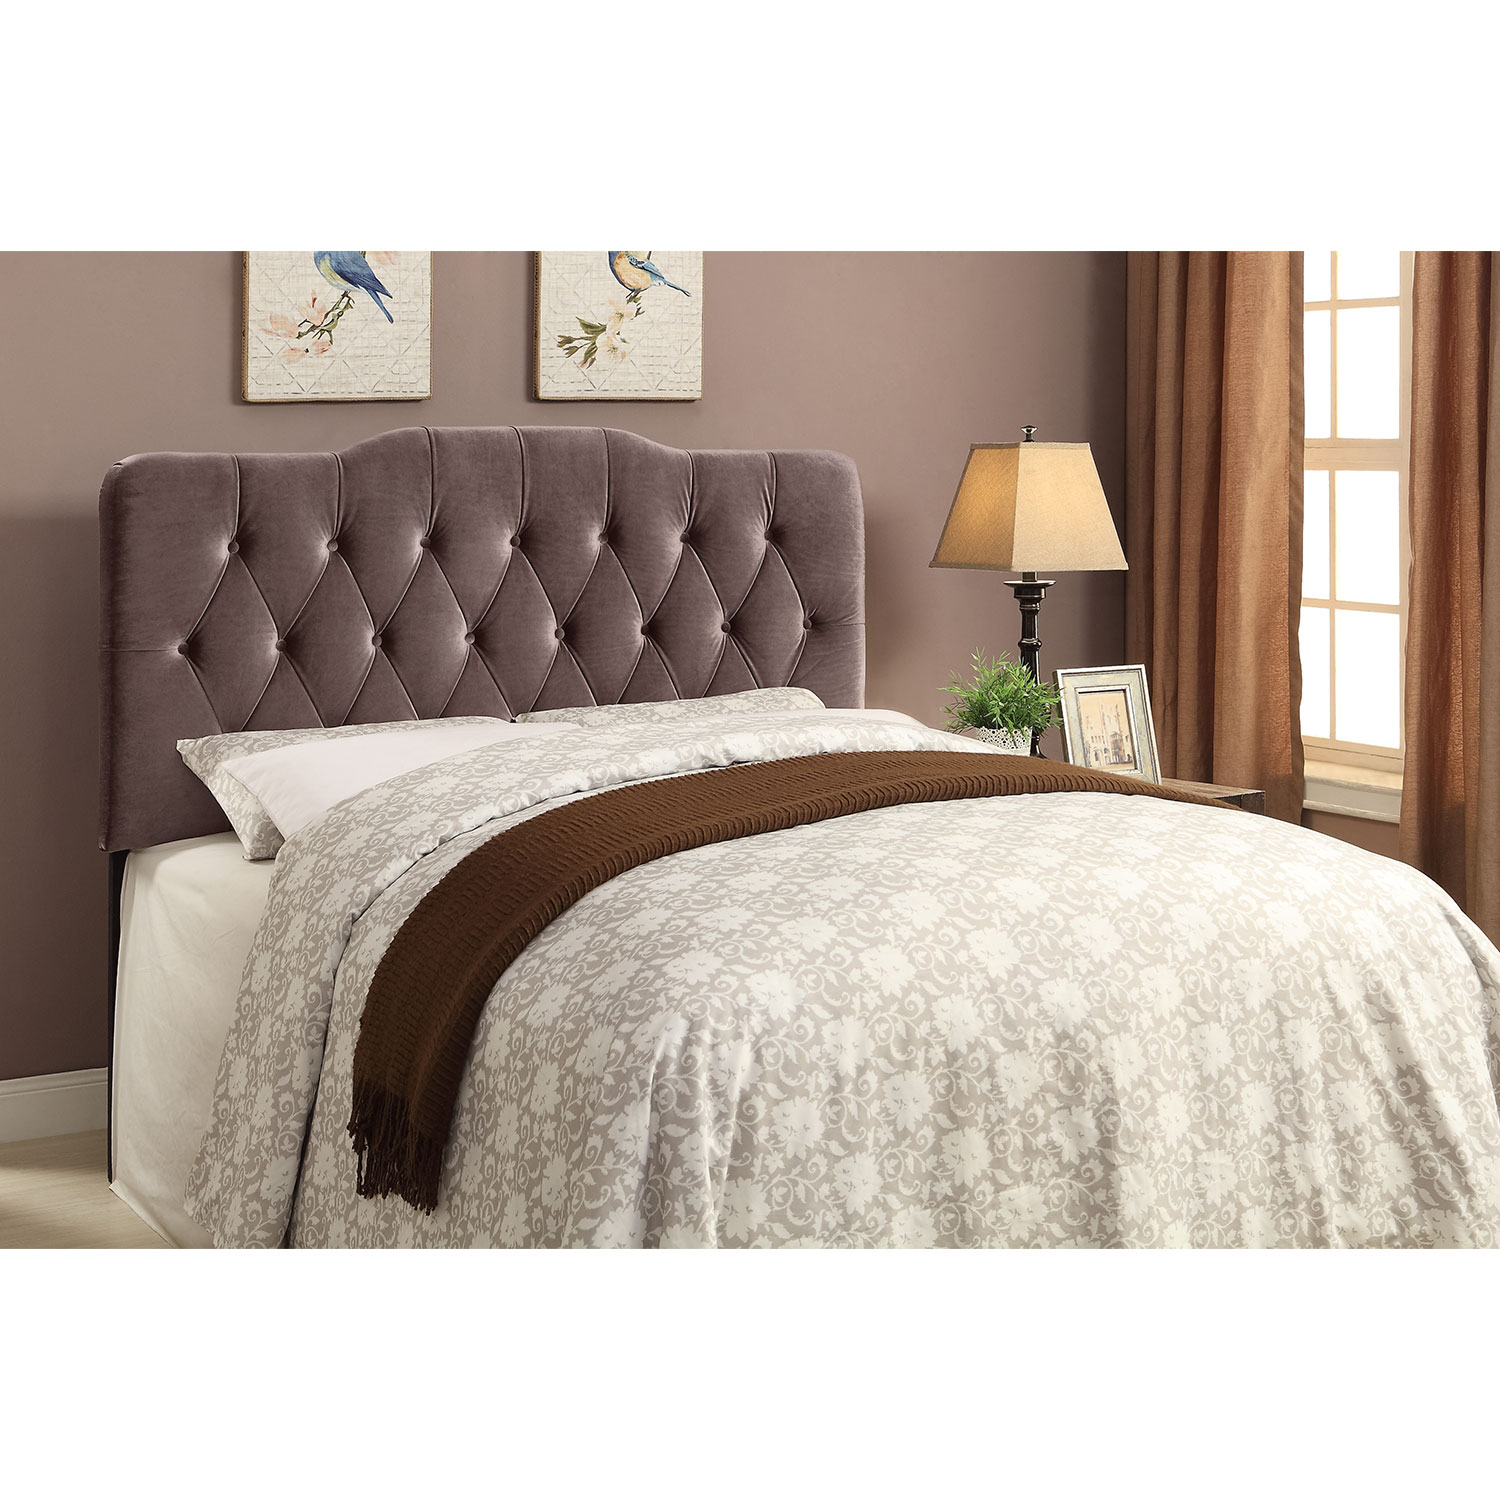 Bedroom Furniture - Quinn King Headboard - Gray